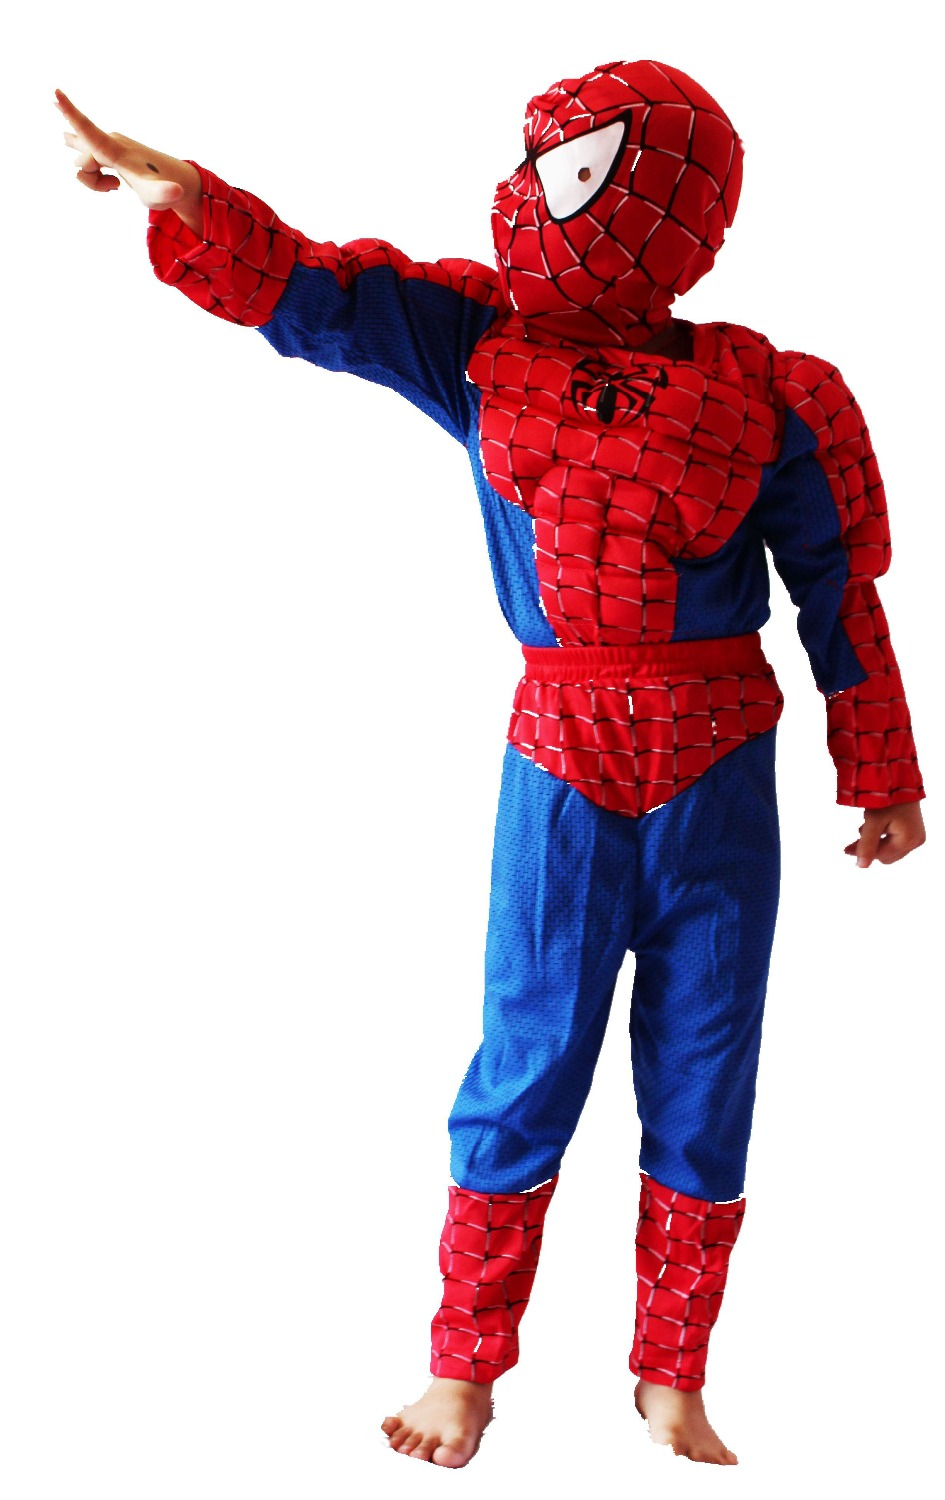 red 3-7years Party Kids Comic Marvel spider-man Muscle Halloween Costume, boy roll play ტანსაცმელი უფასო გადაზიდვა